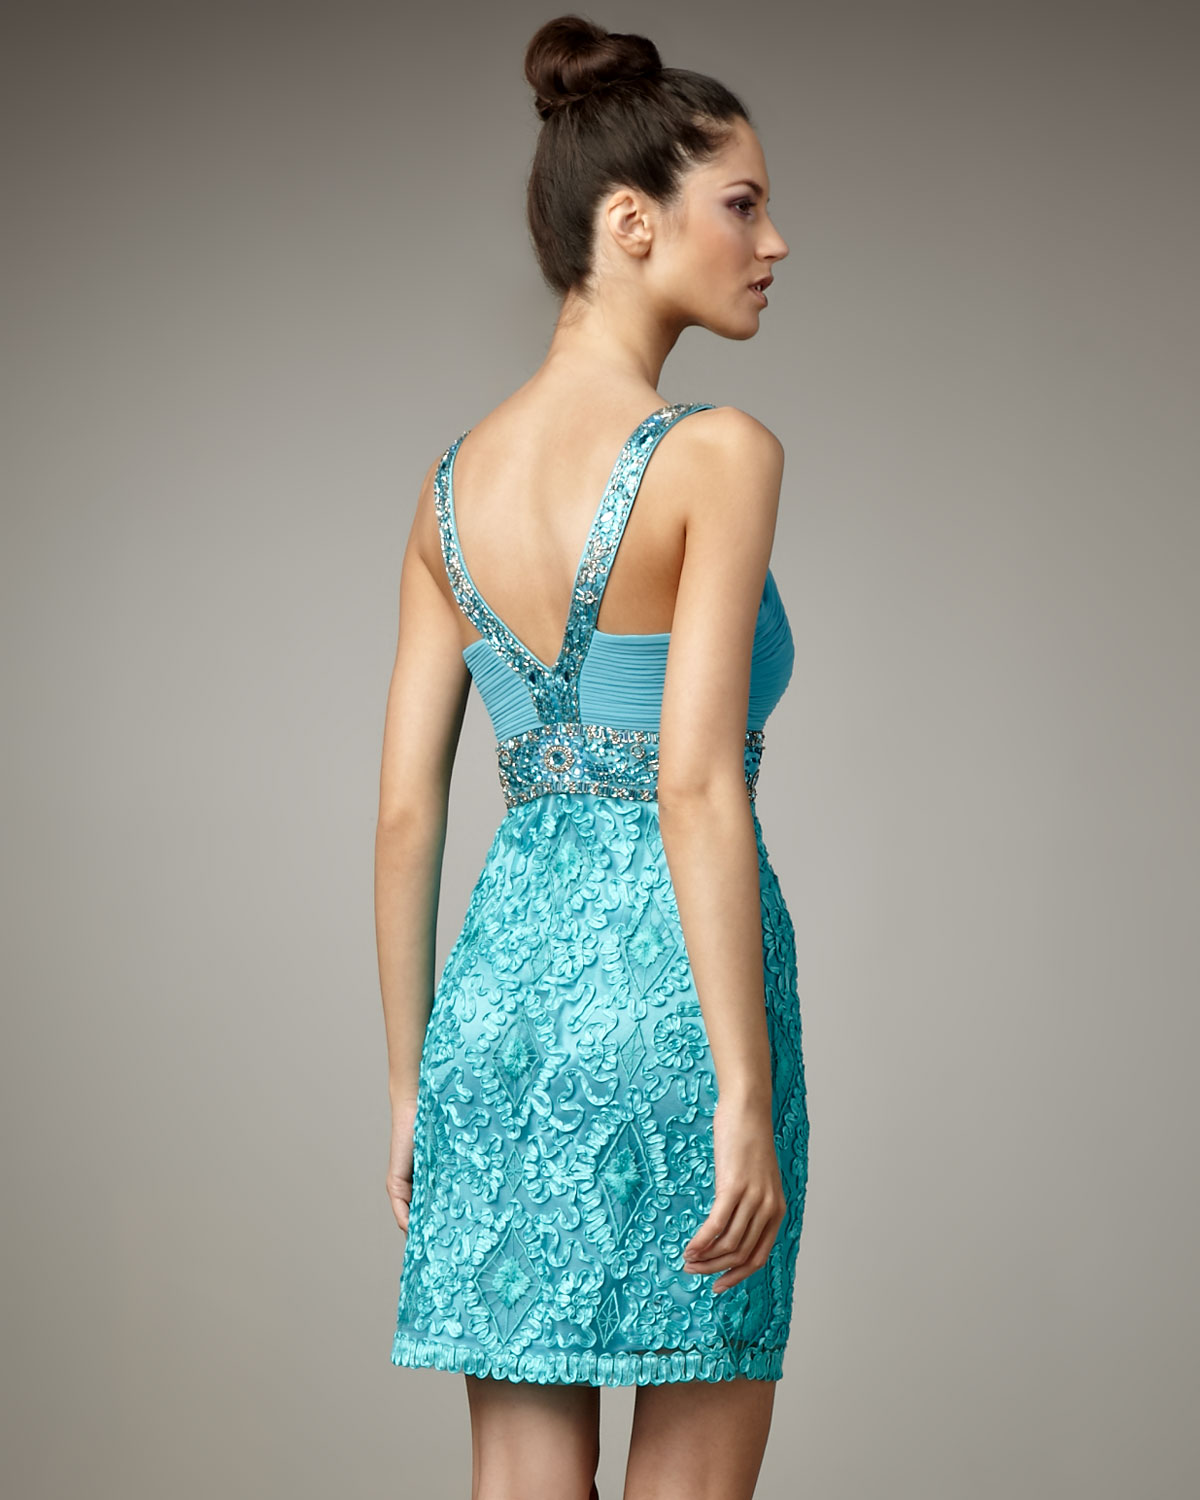 Lyst - Sue Wong Bead-strap Cocktail Dress in Blue